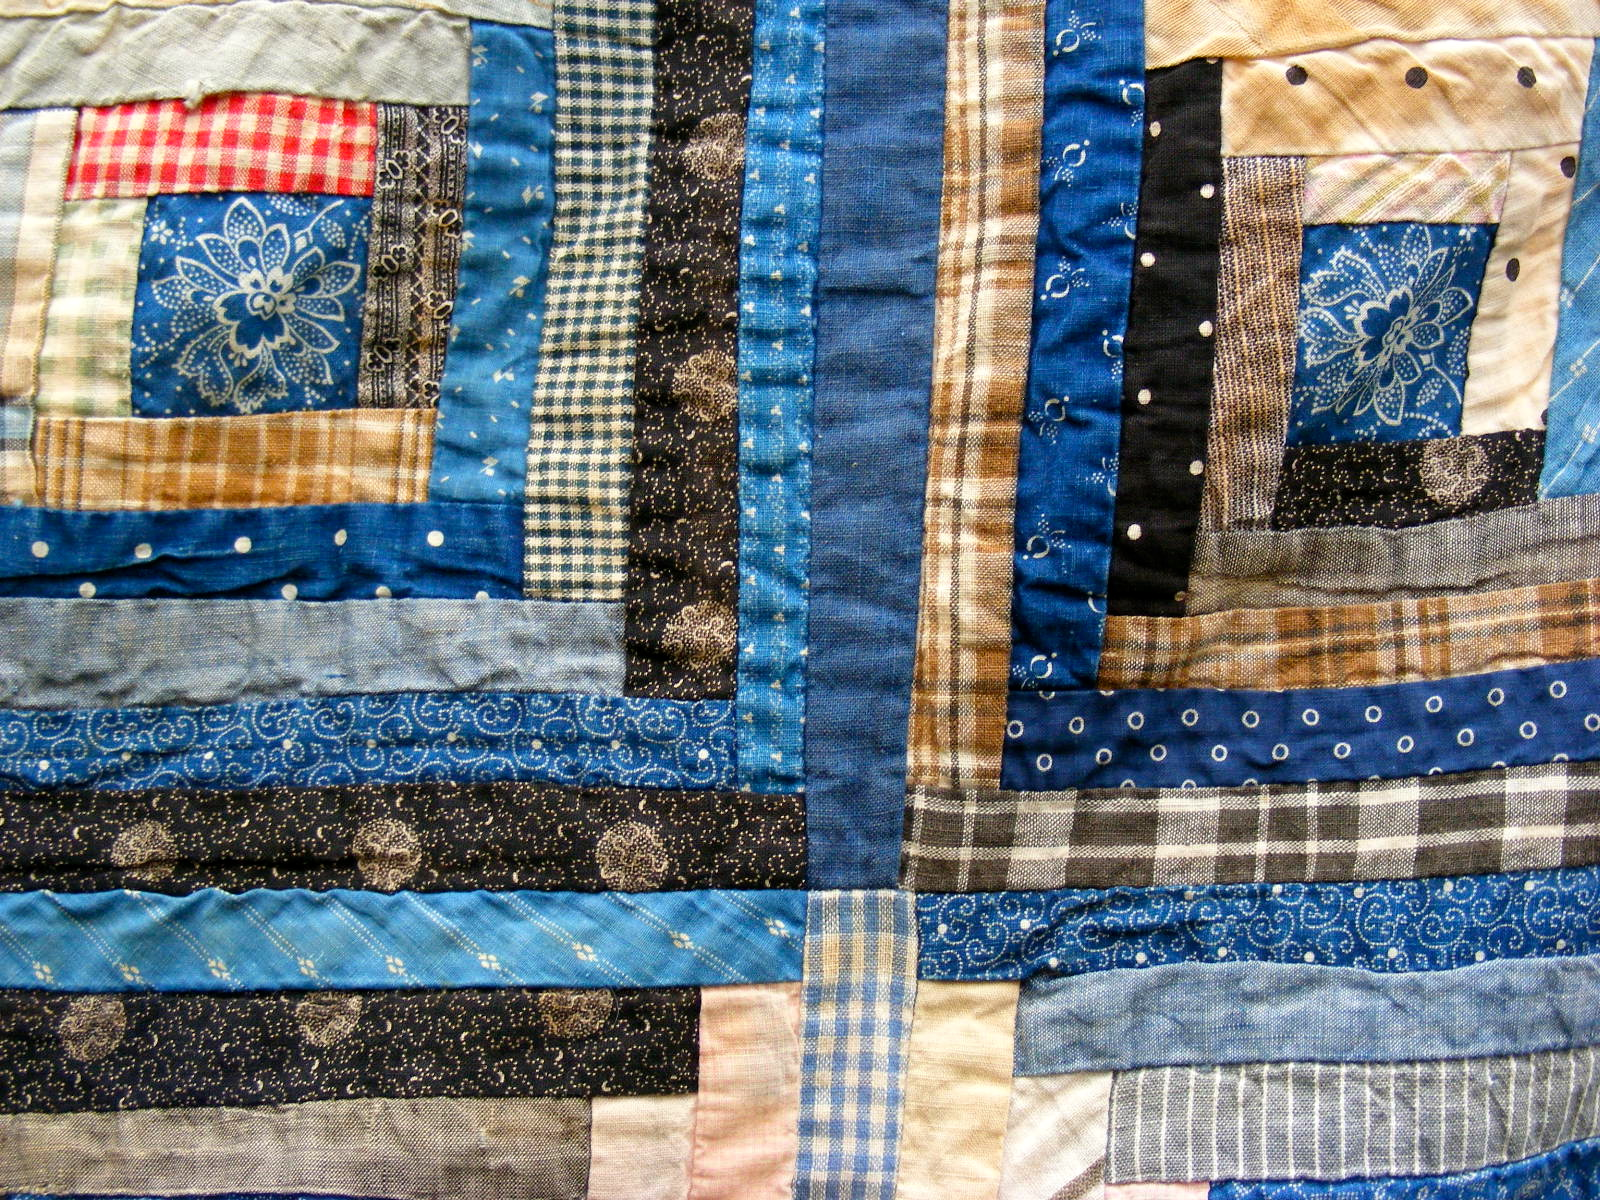 Beau Can You Recognize Anything Special About This Log Cabin? A Log Cabin Is A  Very Traditional Block...I Wonder It You Can Spot Where This Quilt Maker  Did Her ...